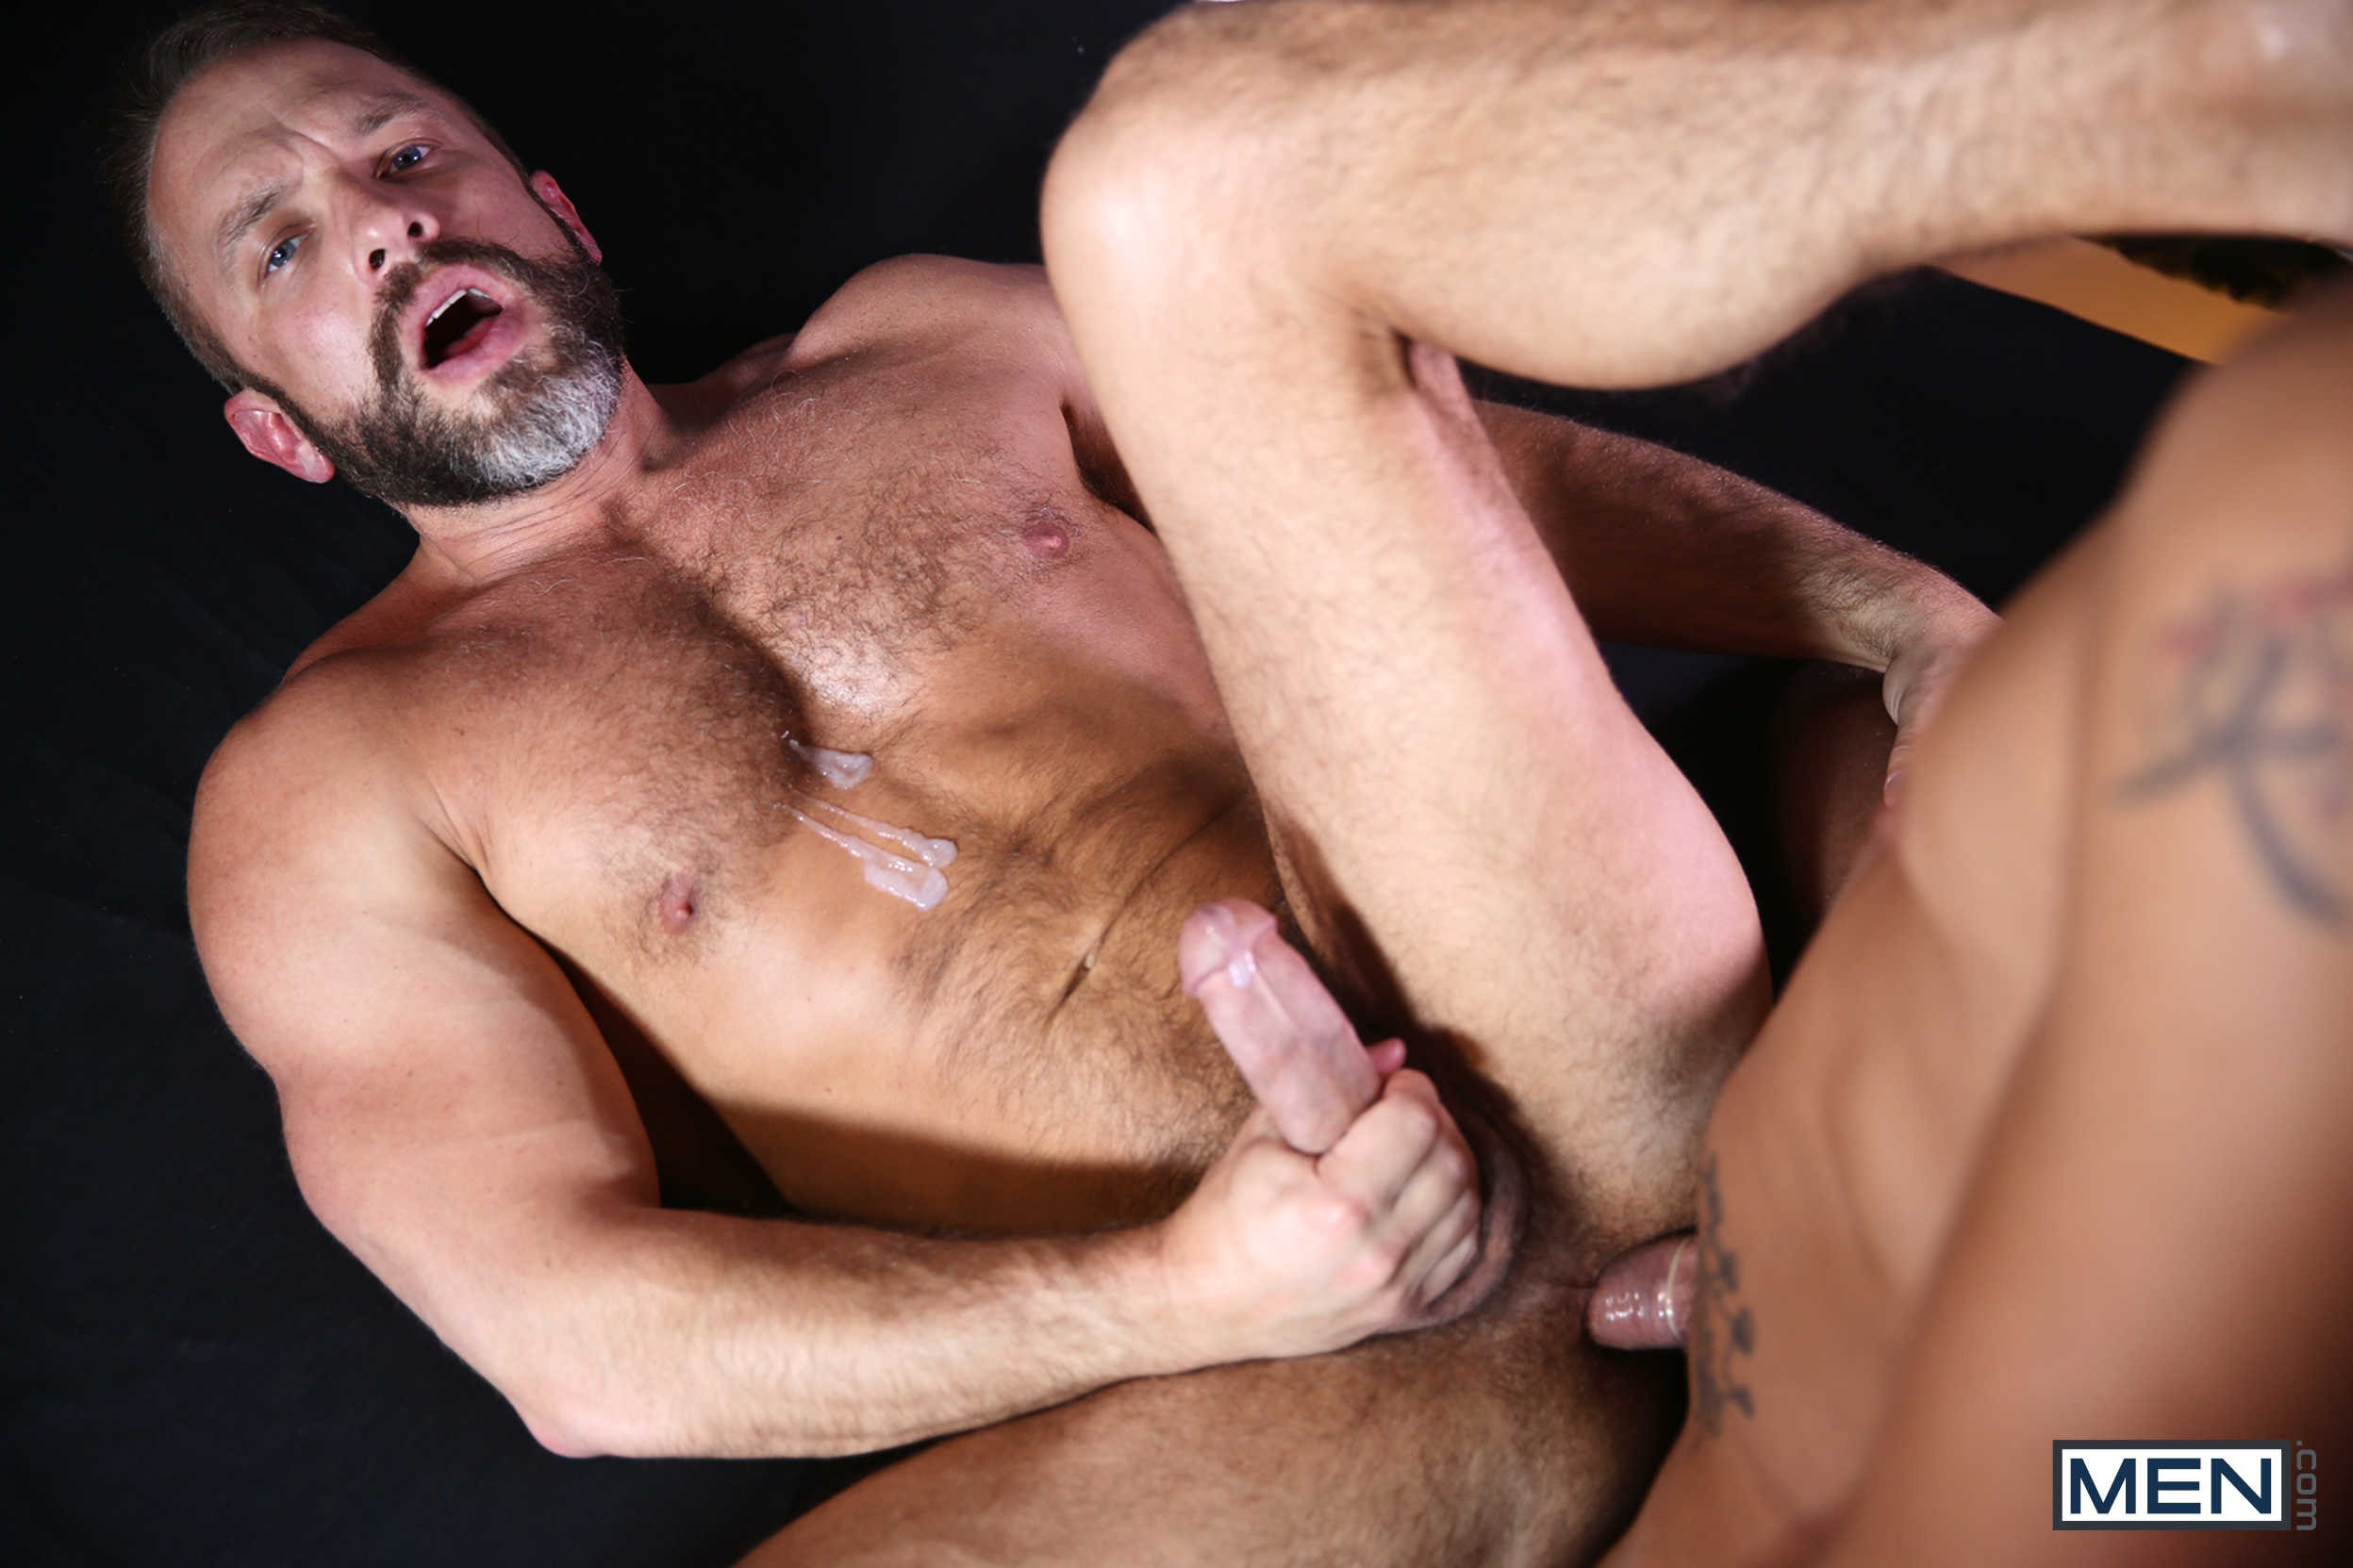 Gay anal daddies with boys like luke and 1